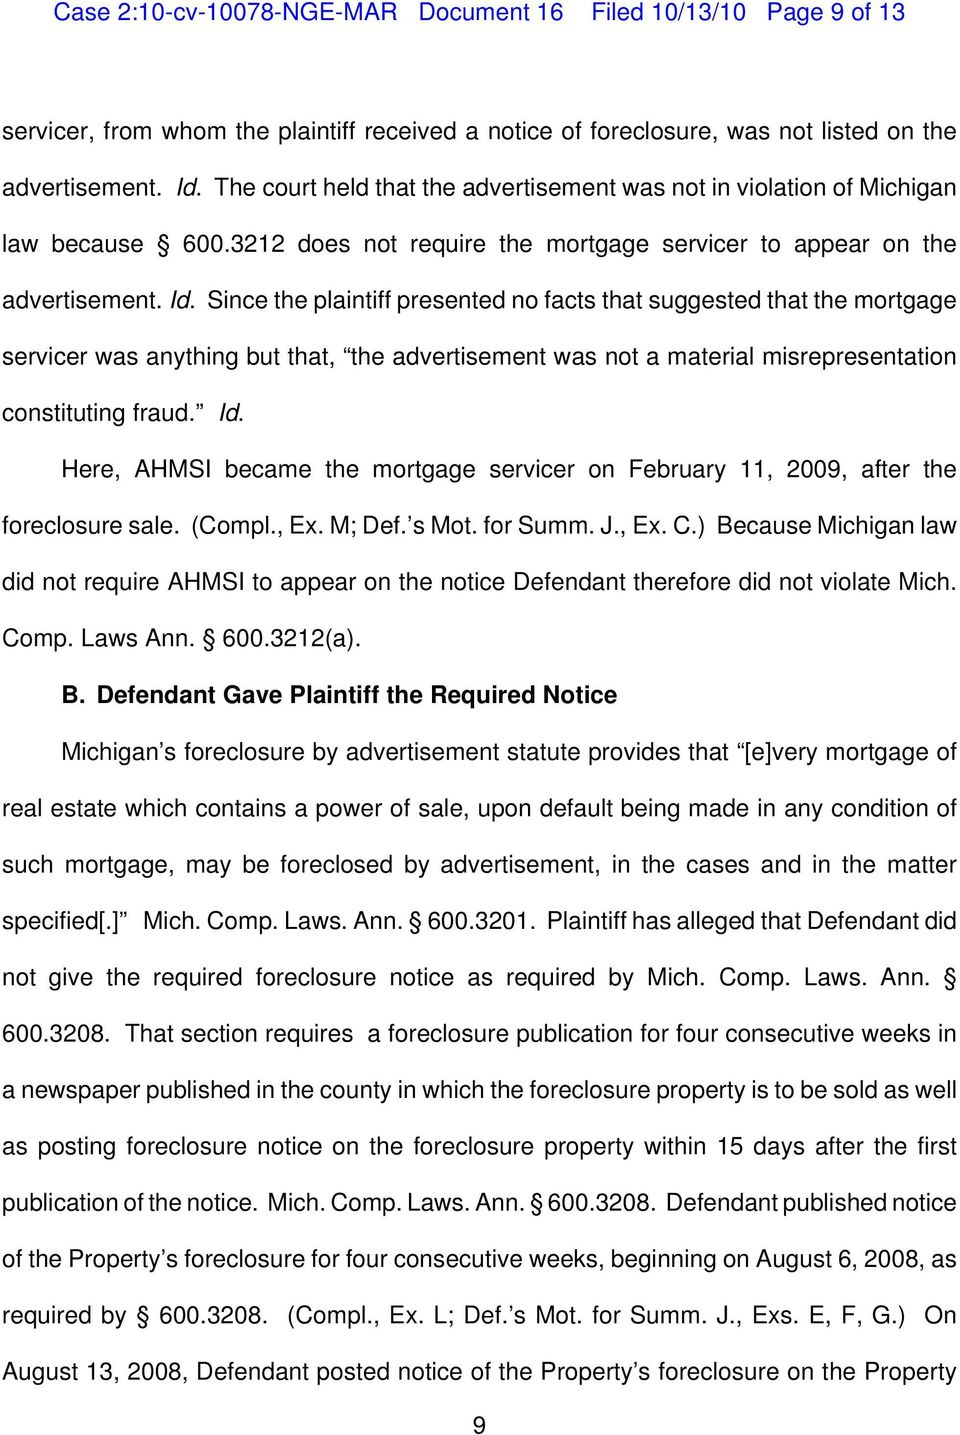 Since the plaintiff presented no facts that suggested that the mortgage servicer was anything but that, the advertisement was not a material misrepresentation constituting fraud. Id.